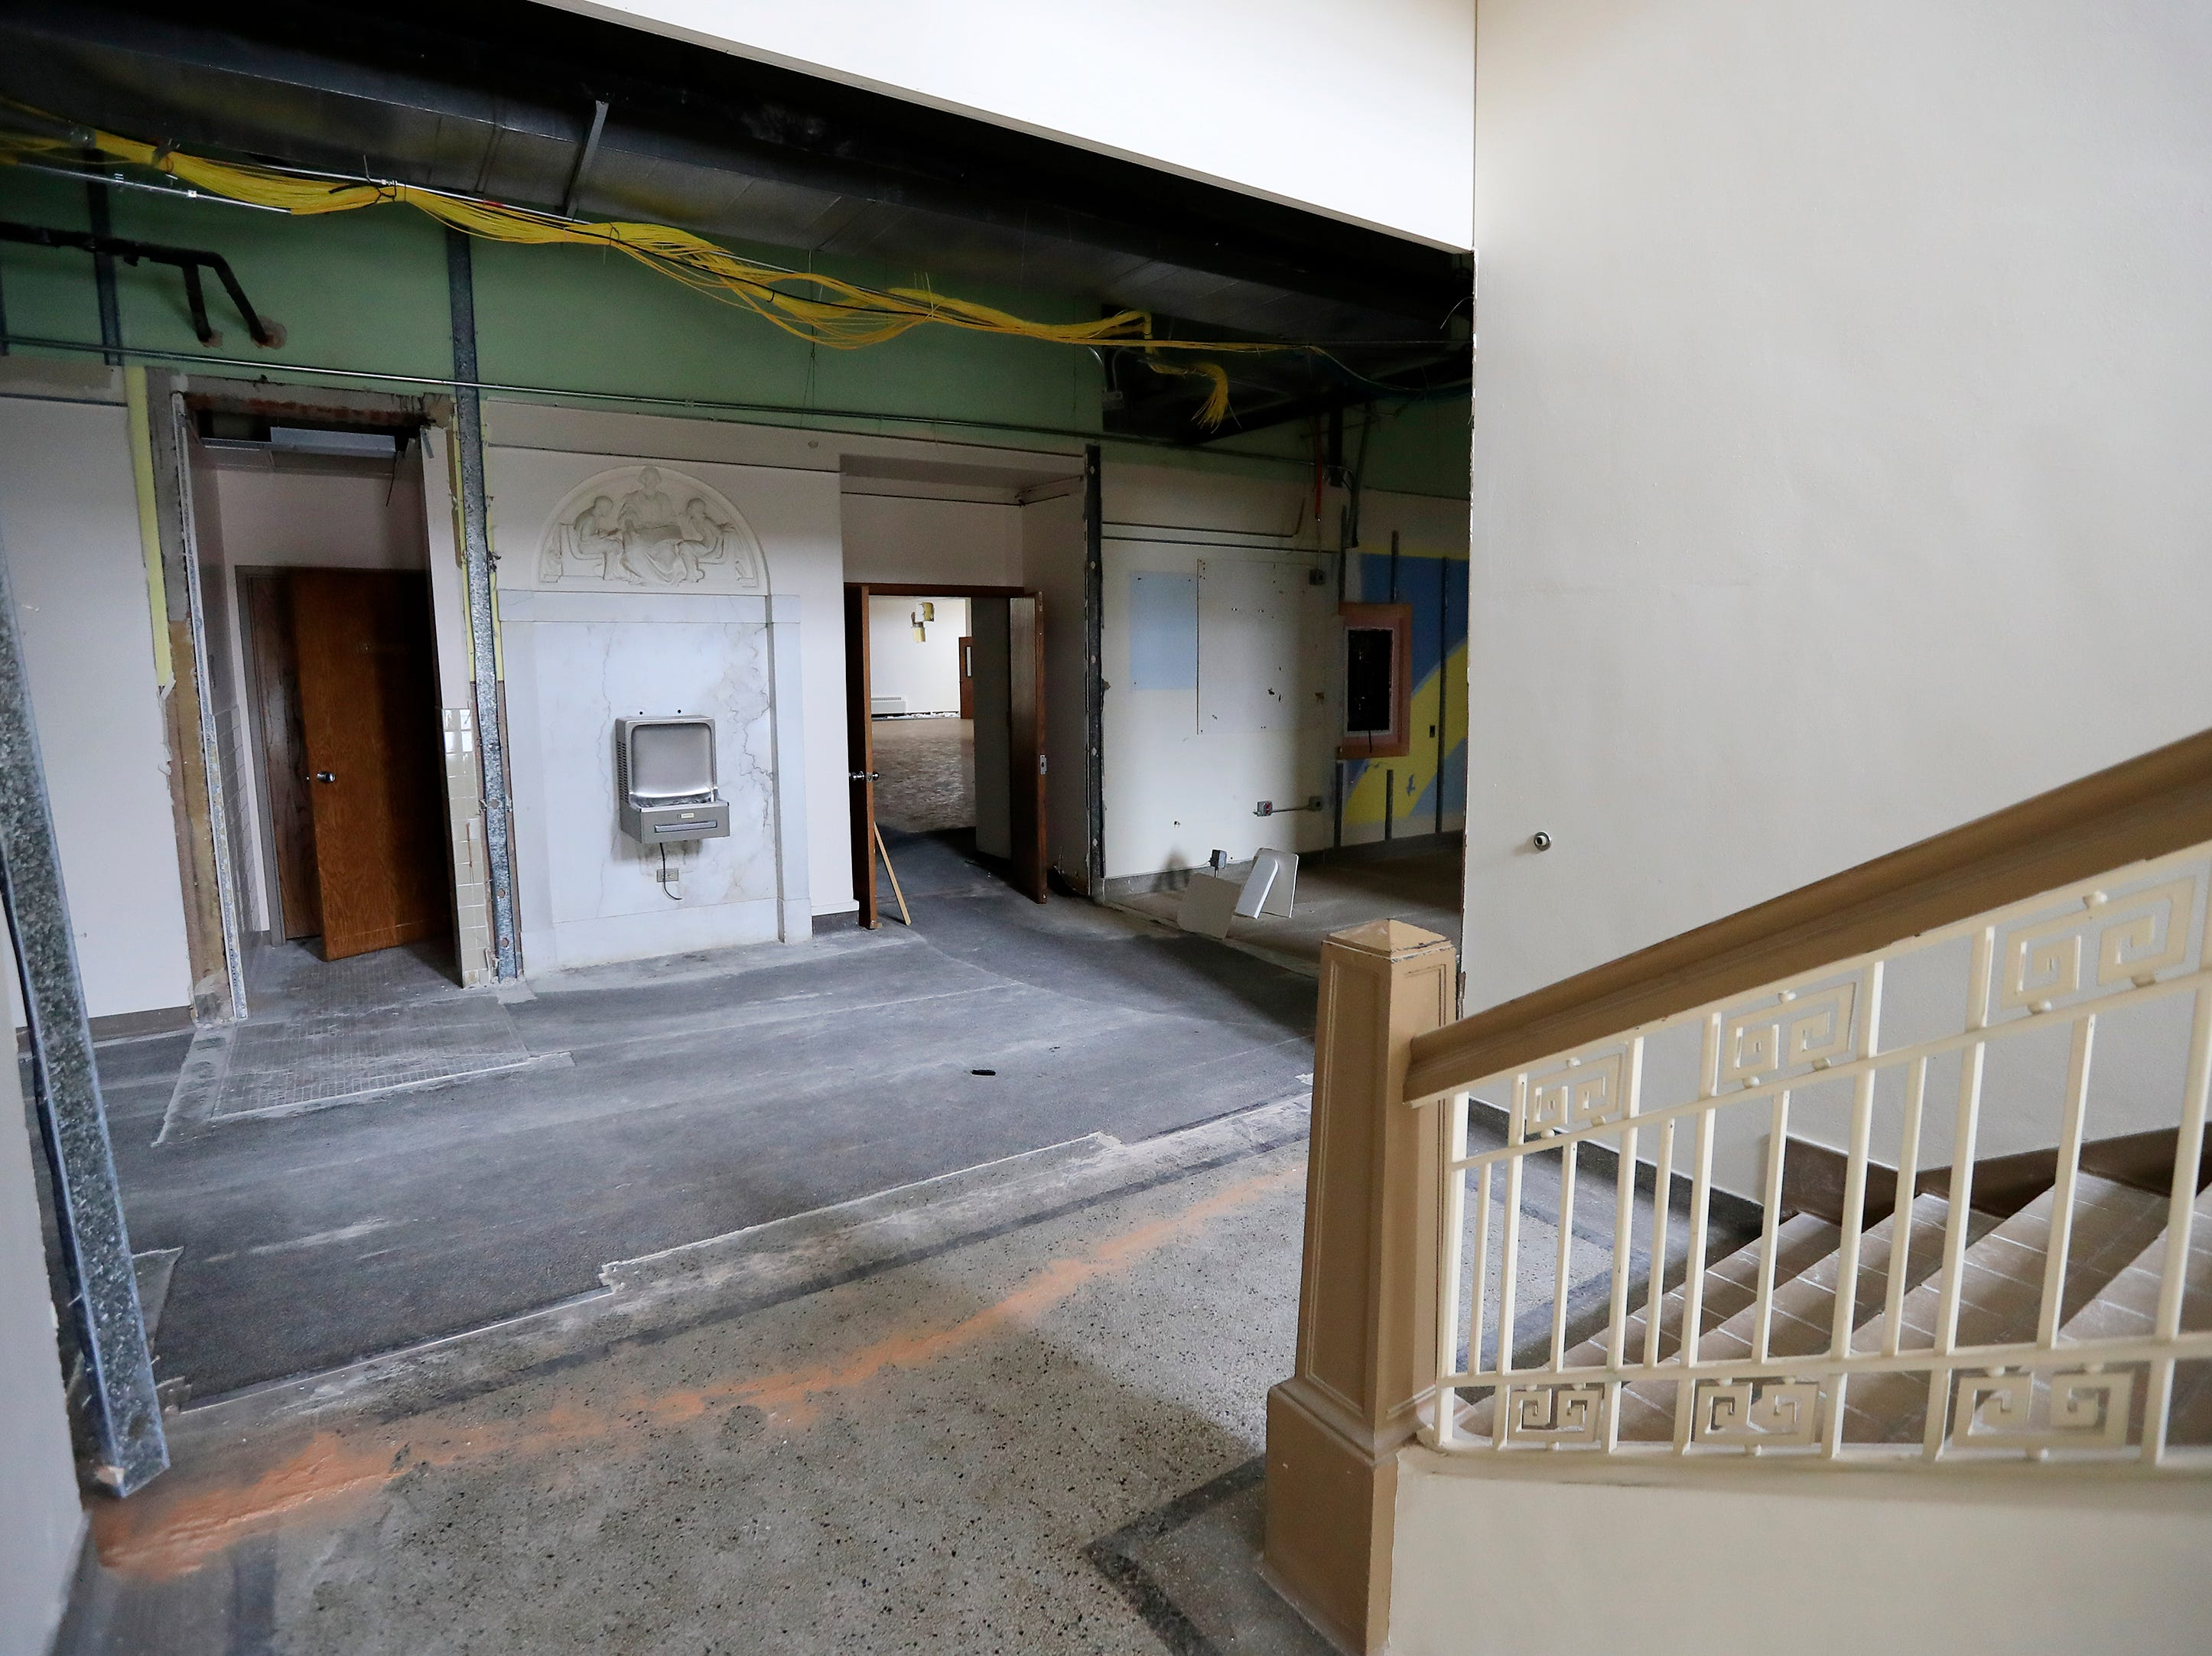 The 2nd floor hallway inside the former Whitney School building is shown on Tuesday, February 26, 2019 in Green Bay, Wis. The building is being converted into apartments this year.